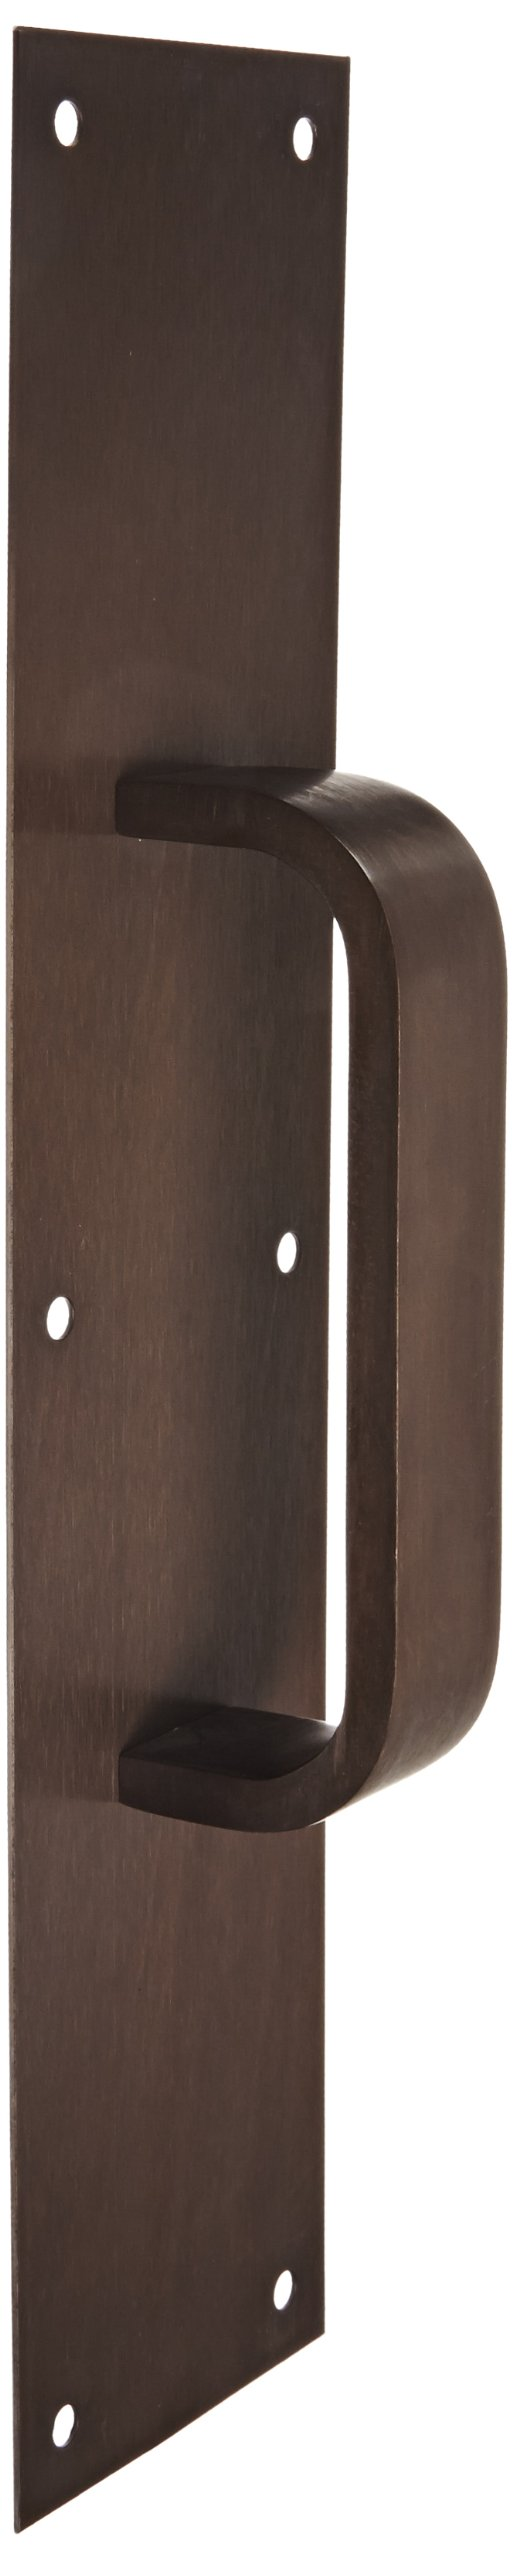 "Rockwood 122 X 70C.10B Bronze Pull Plate, 16"" Height x 4"" Width x 0.050"" Thick, 6"" Center-to-Center Handle Length, 1-1/4"" Handle Width, 3/8"" Handle Thickness, Satin Oxidized Oil Rubbed Finish"